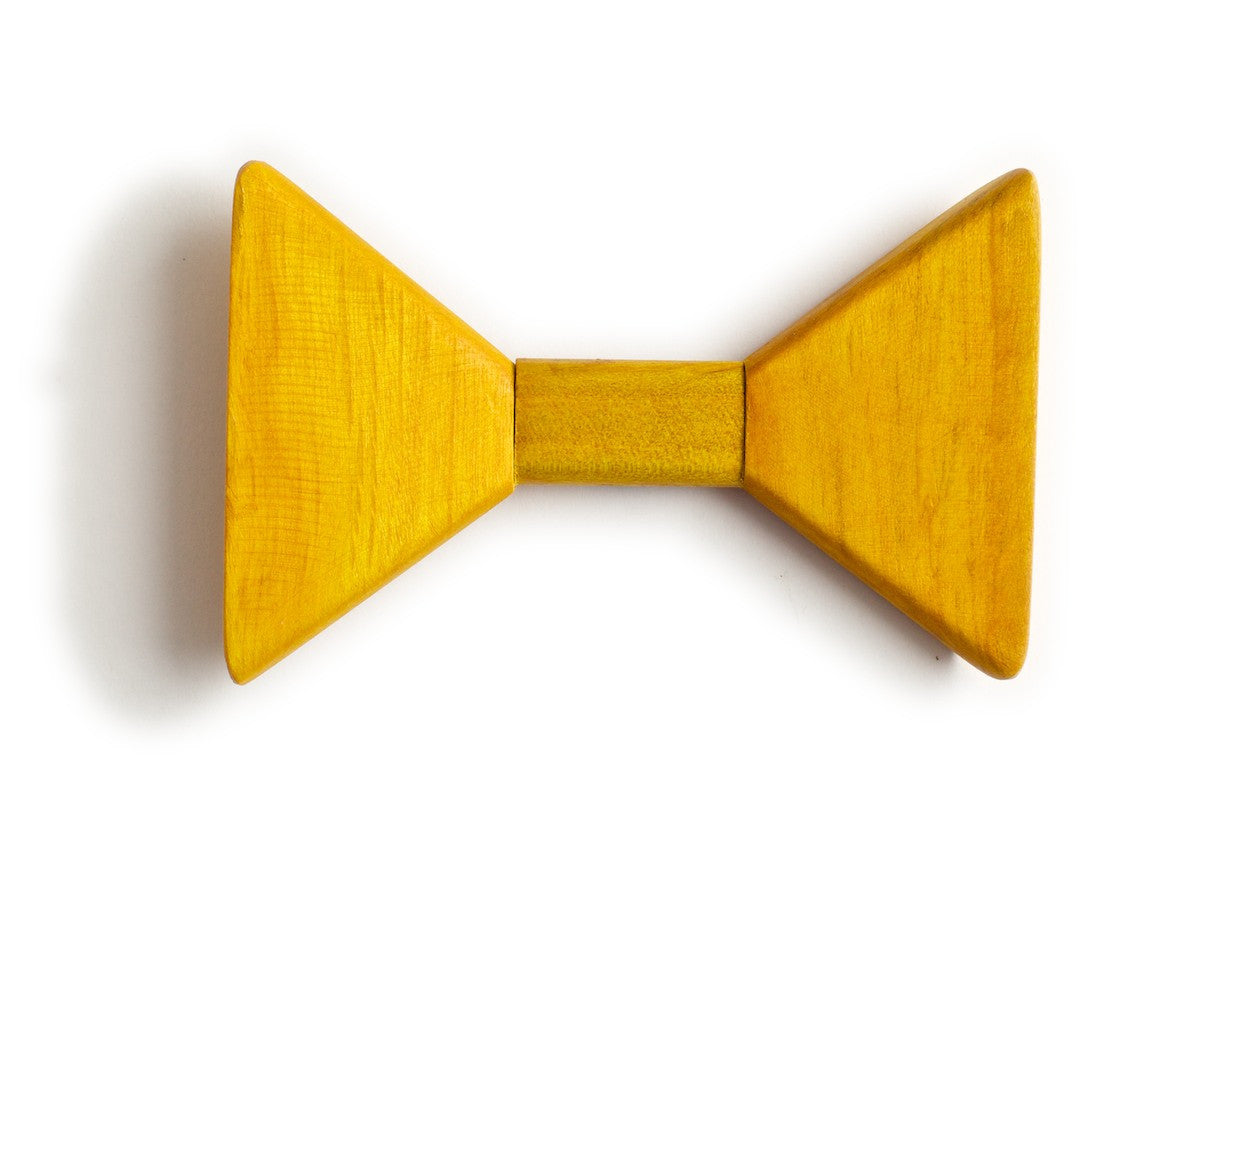 Sharp.c Yellow Wooden Bow Tie